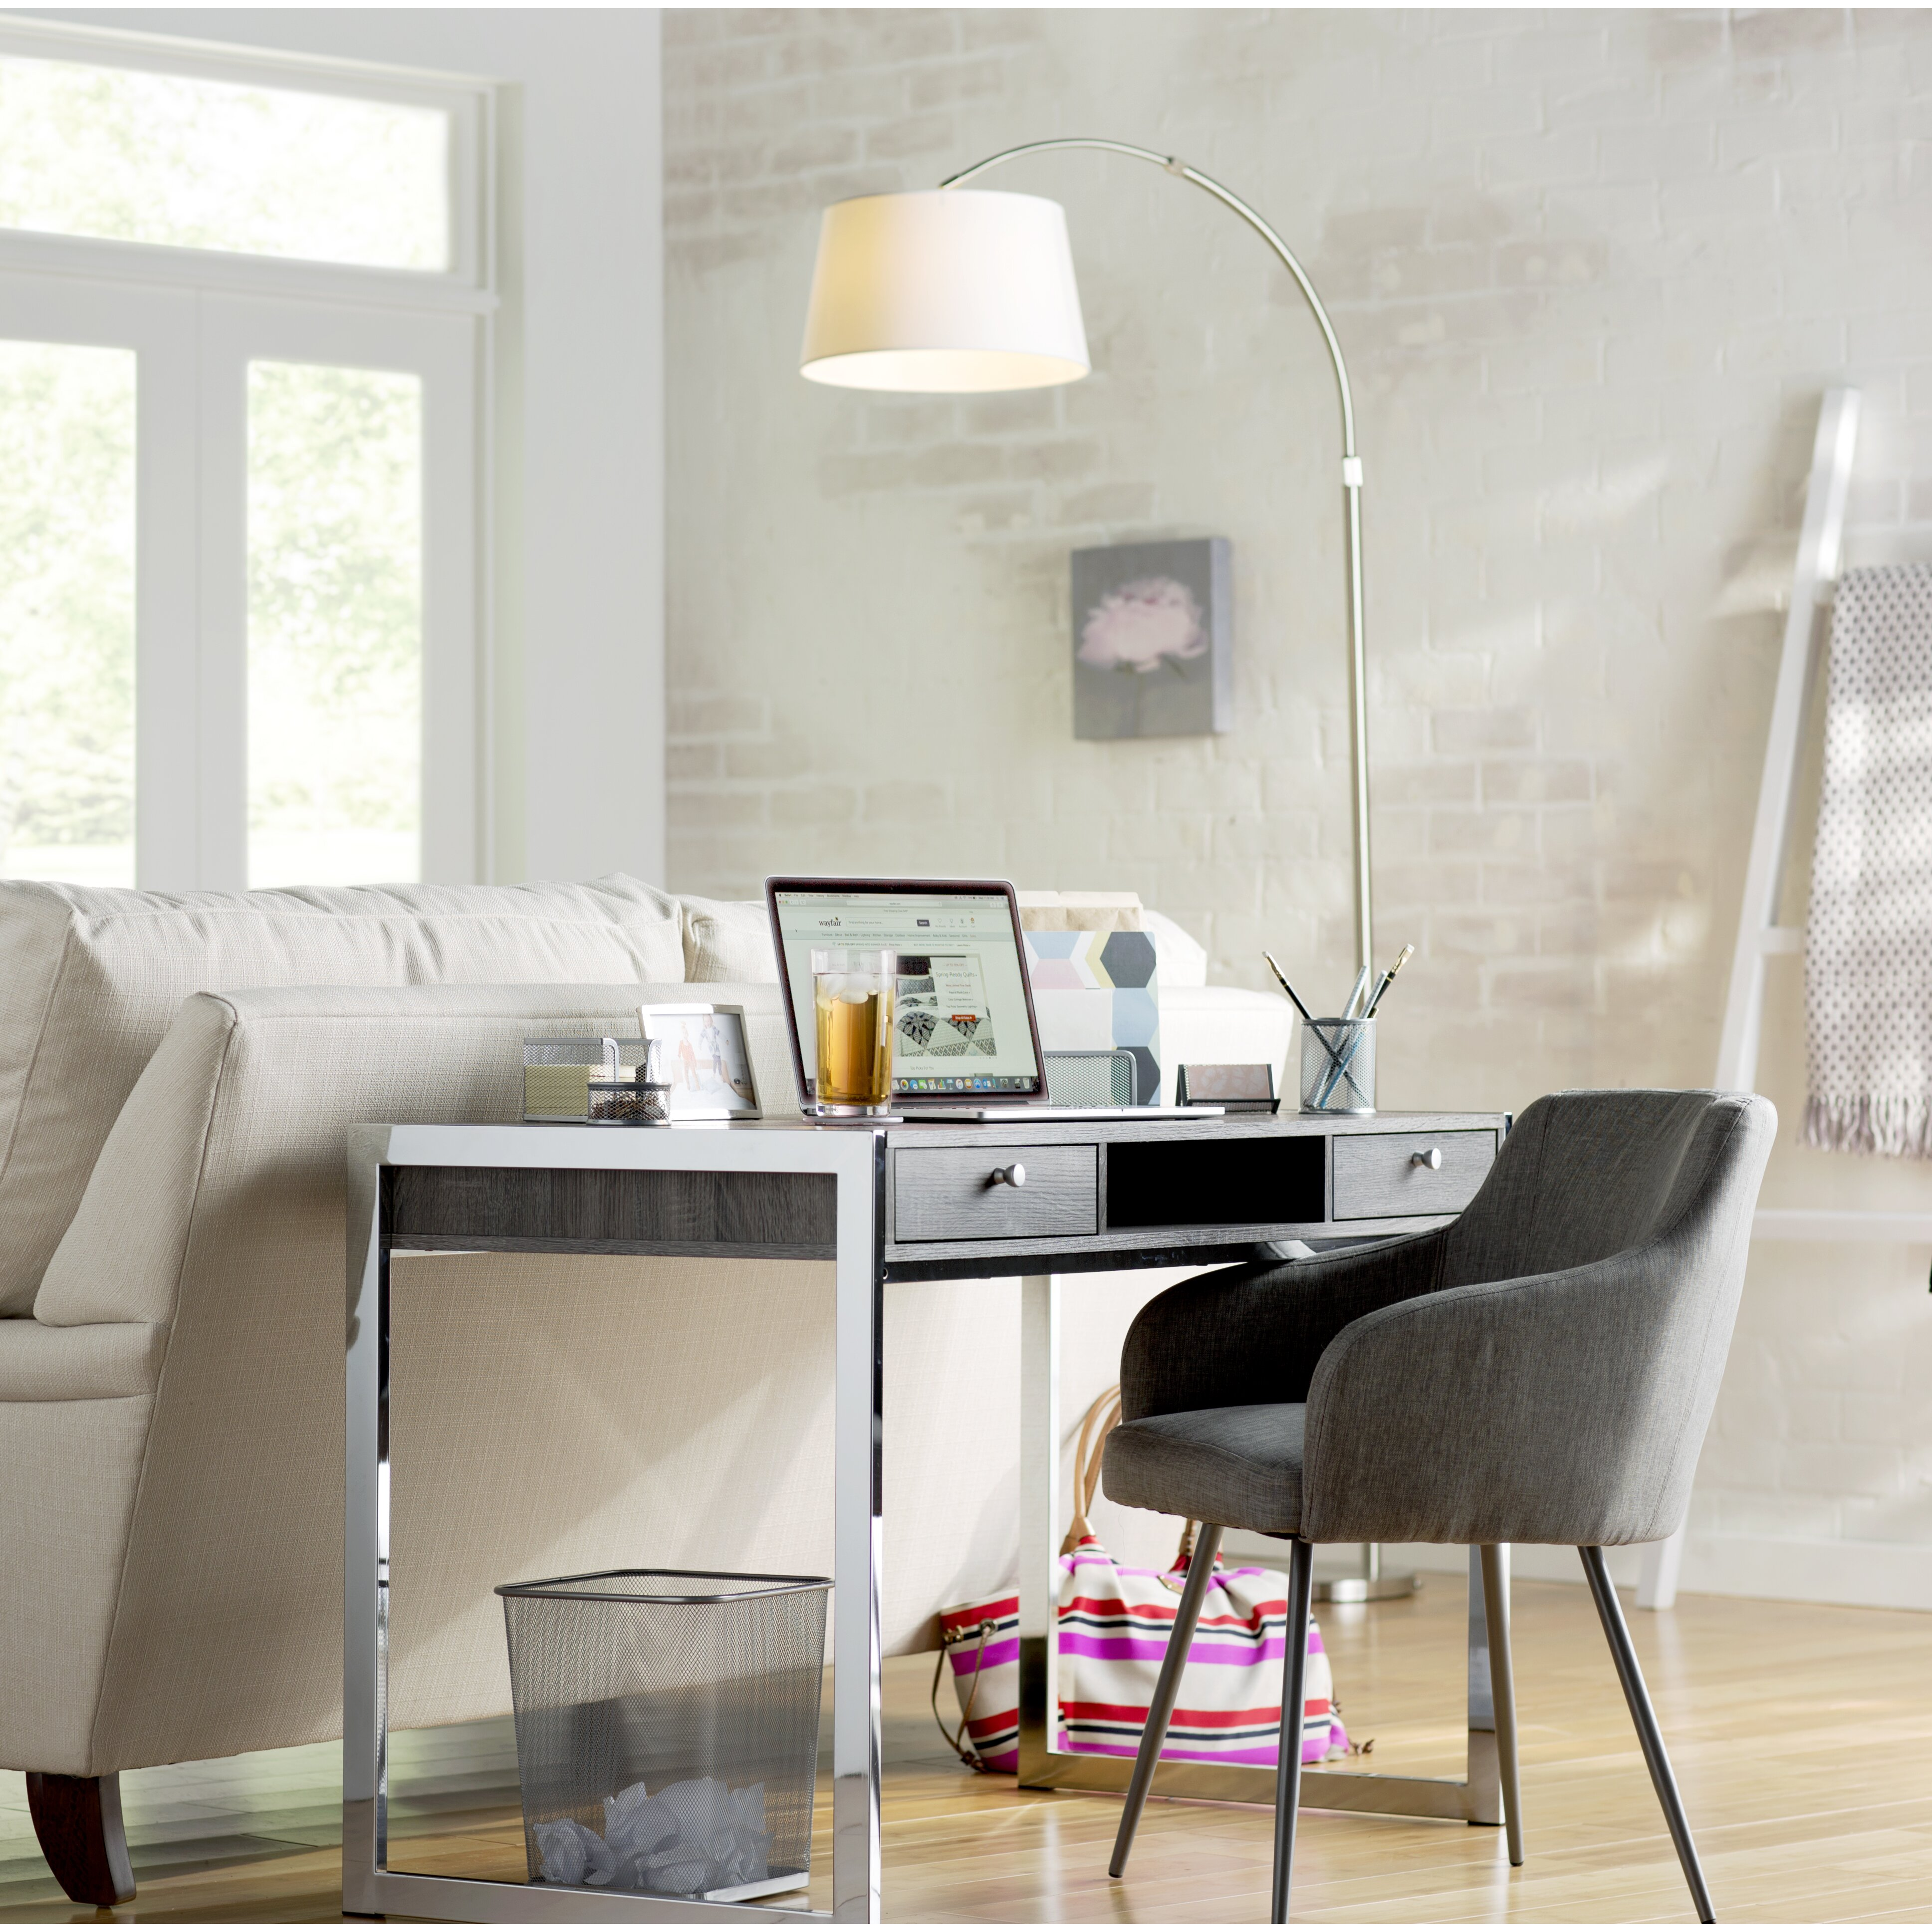 Arc floor lamp dining table -  Led Arched Floor Lamp Brayden Studio Reg Reisinger 82 Quot